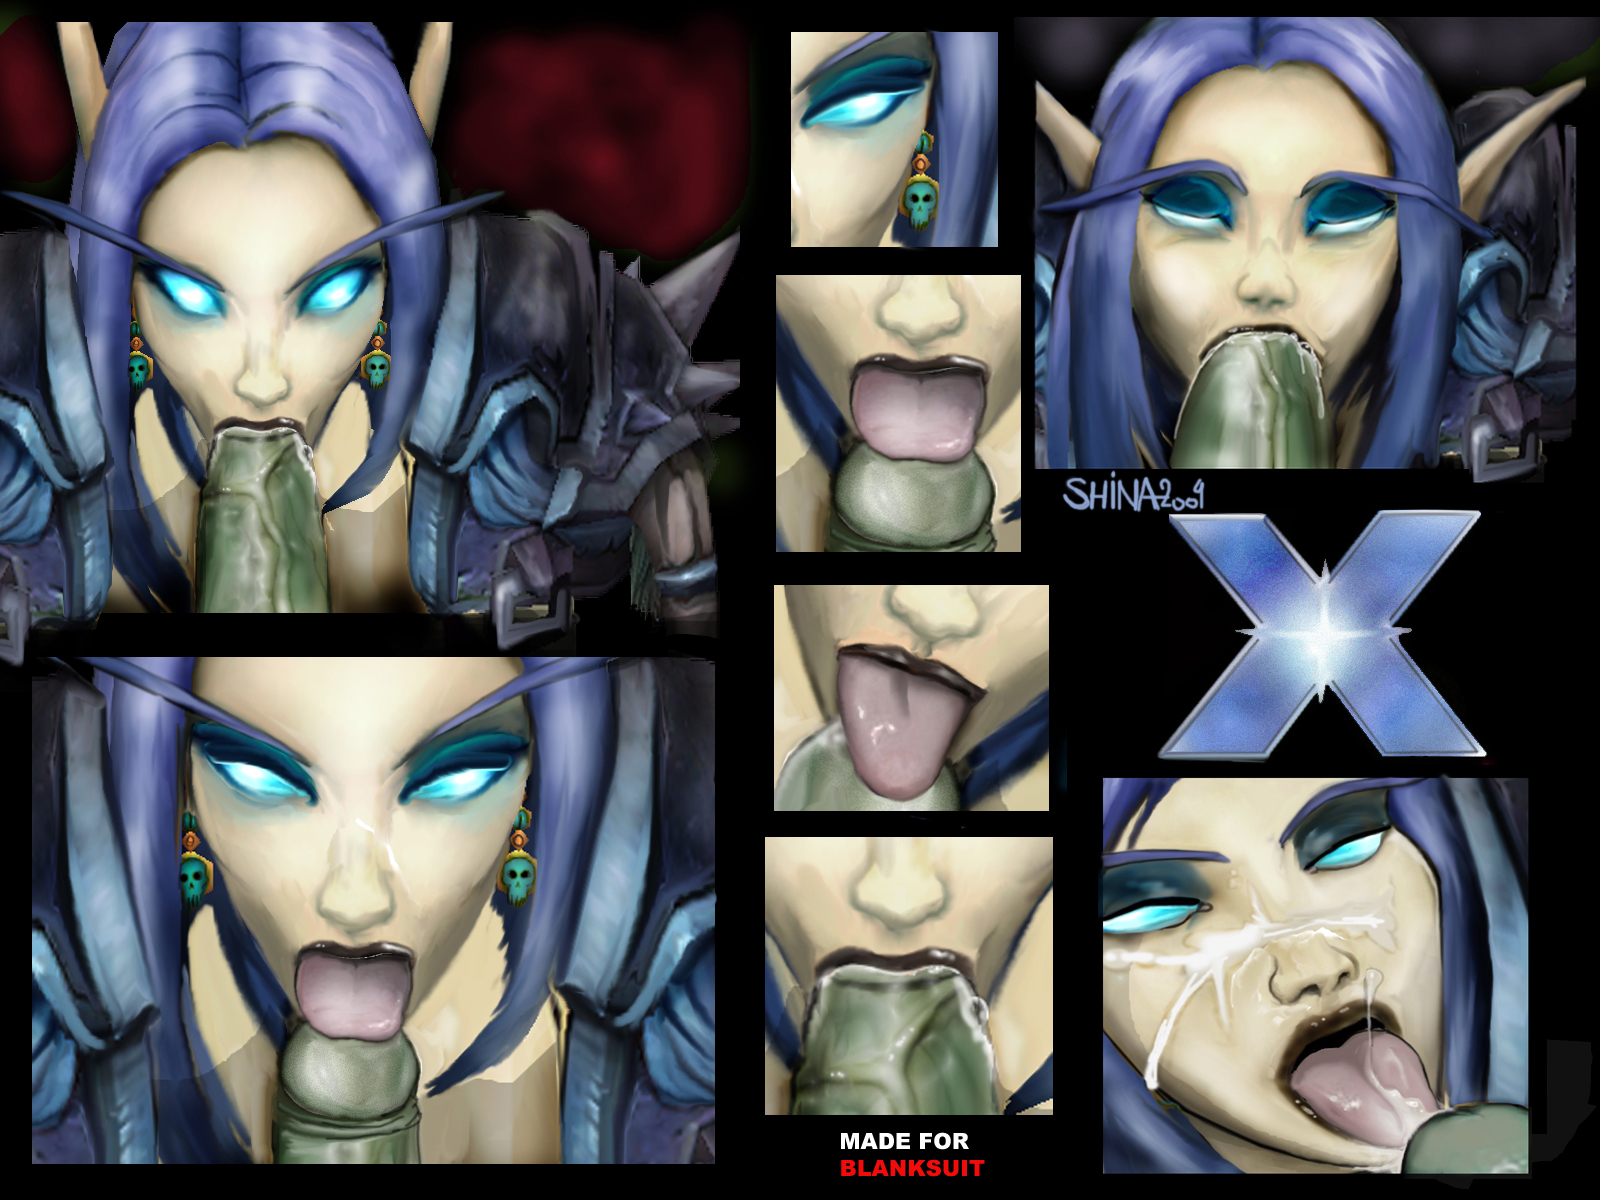 World of warcraft luscious xxx image